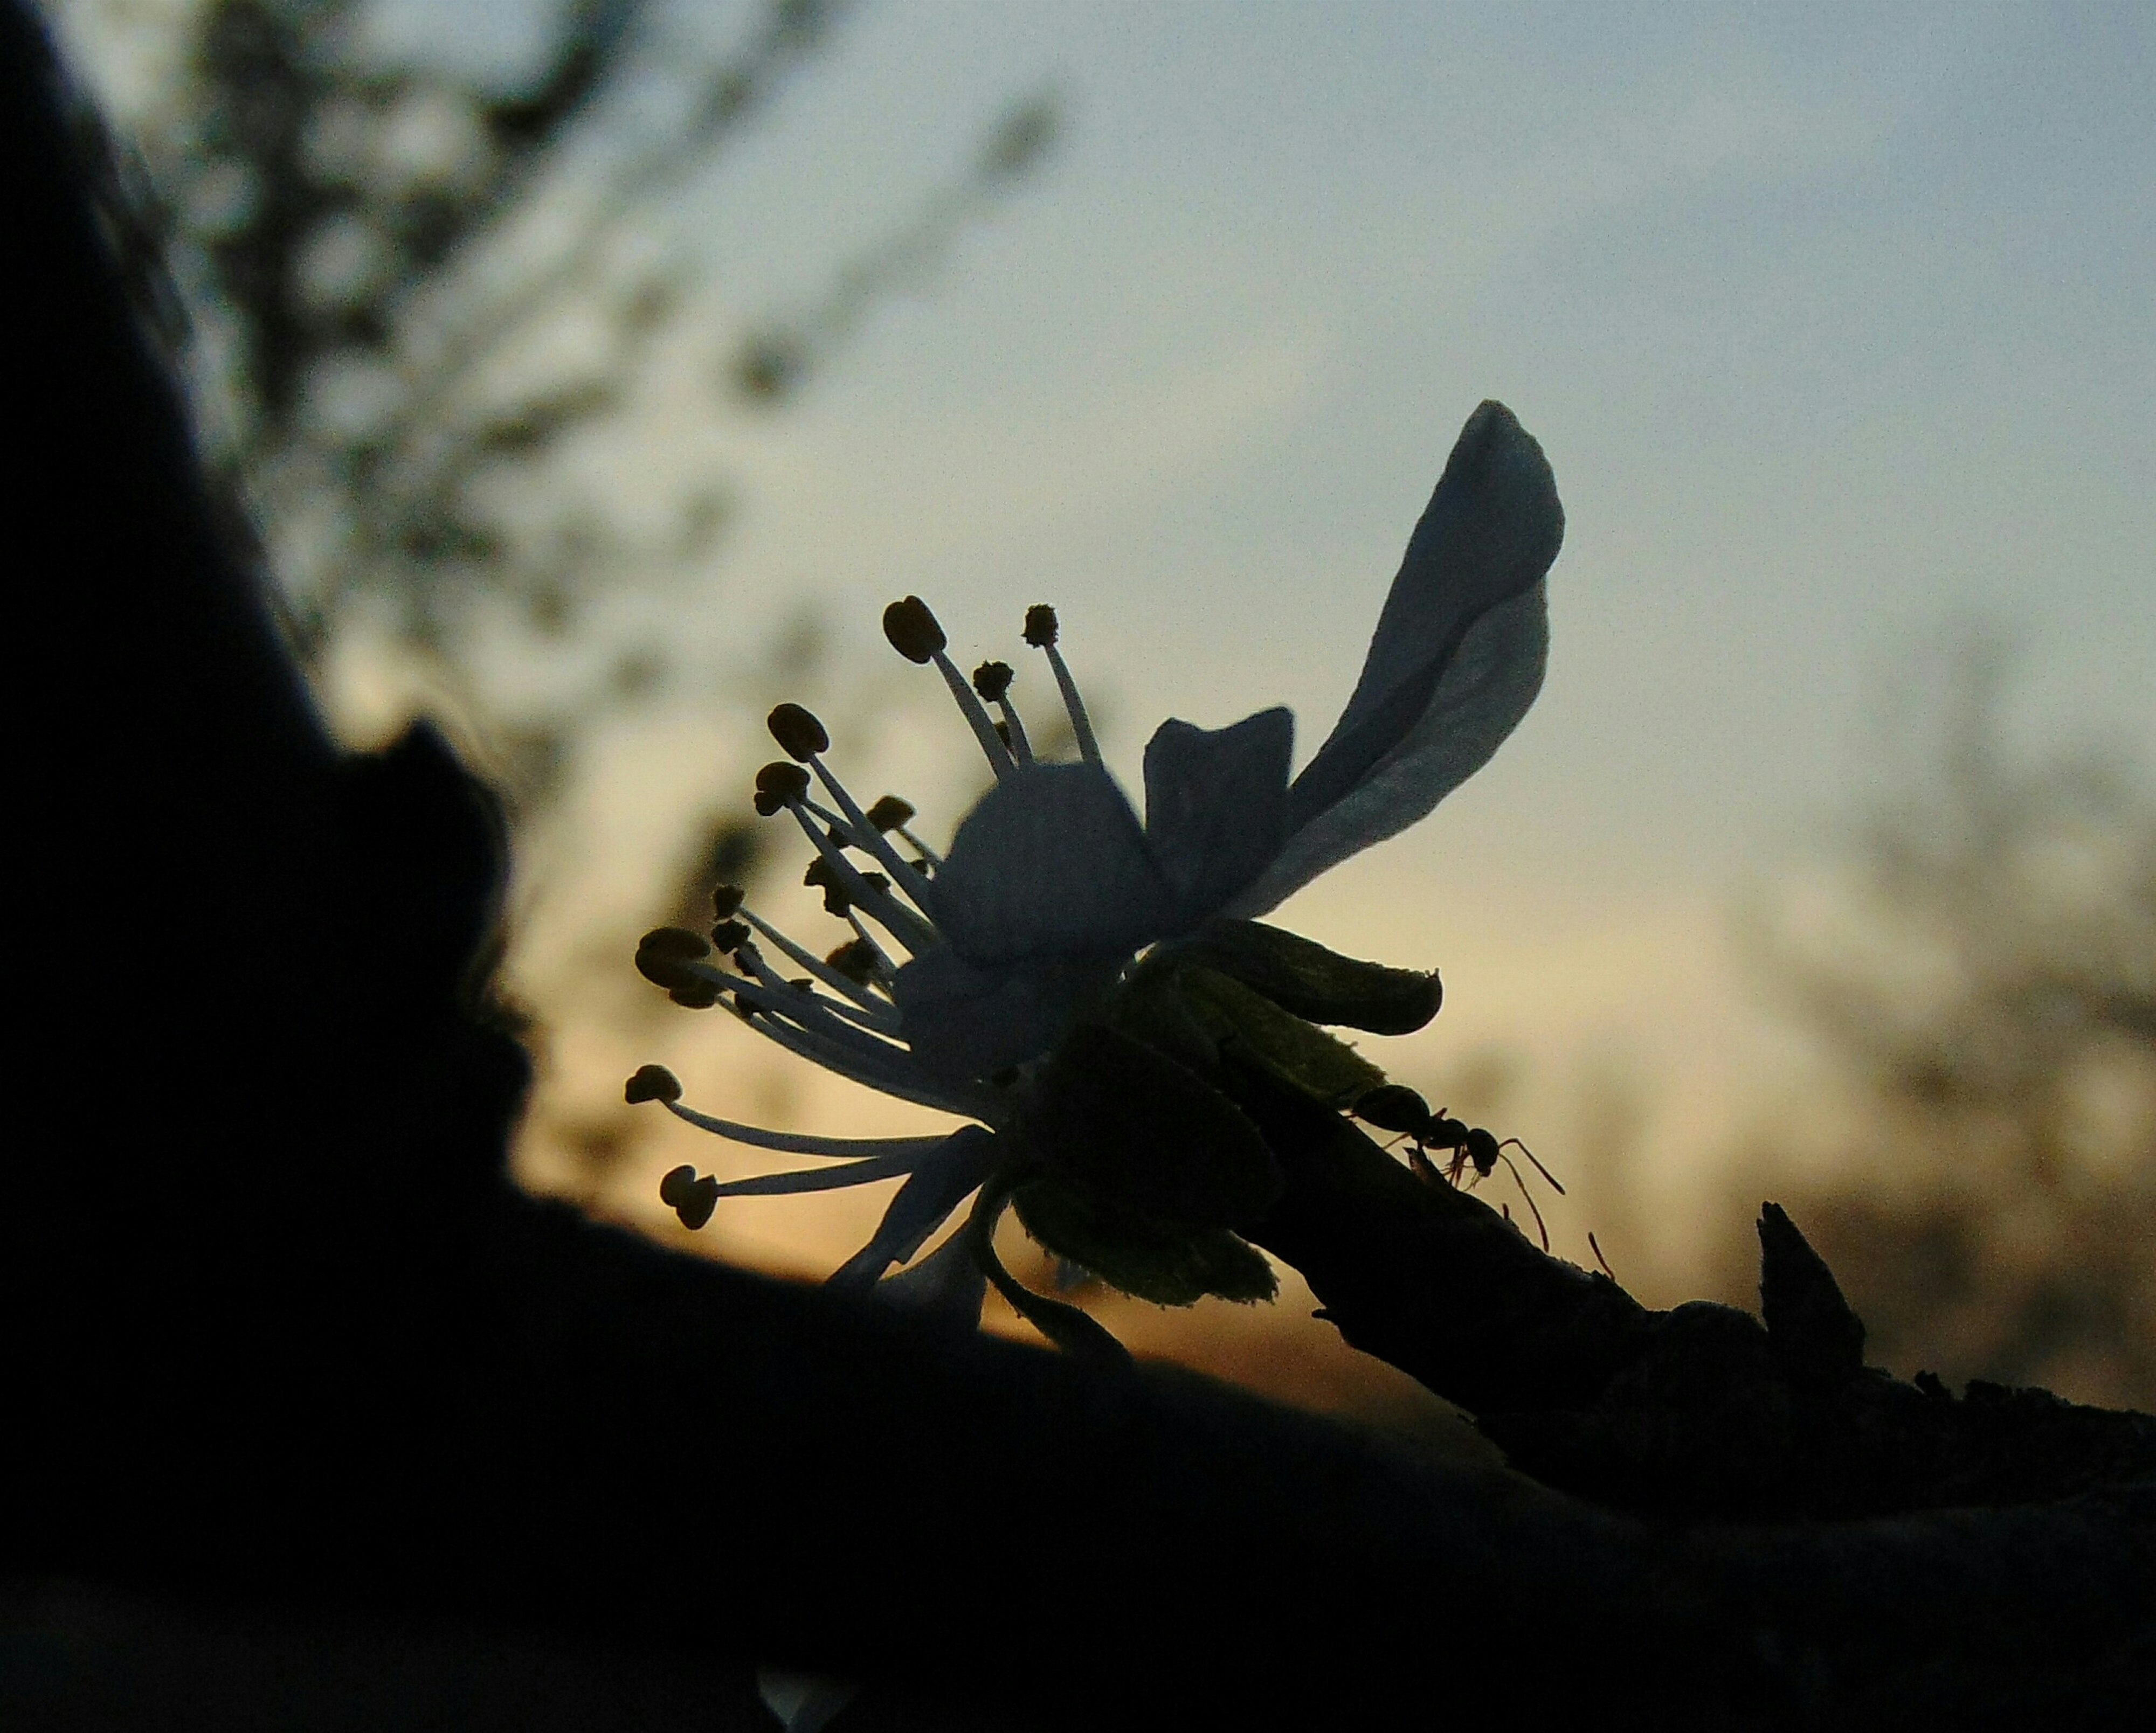 Sunset with flower and ant (detailed)